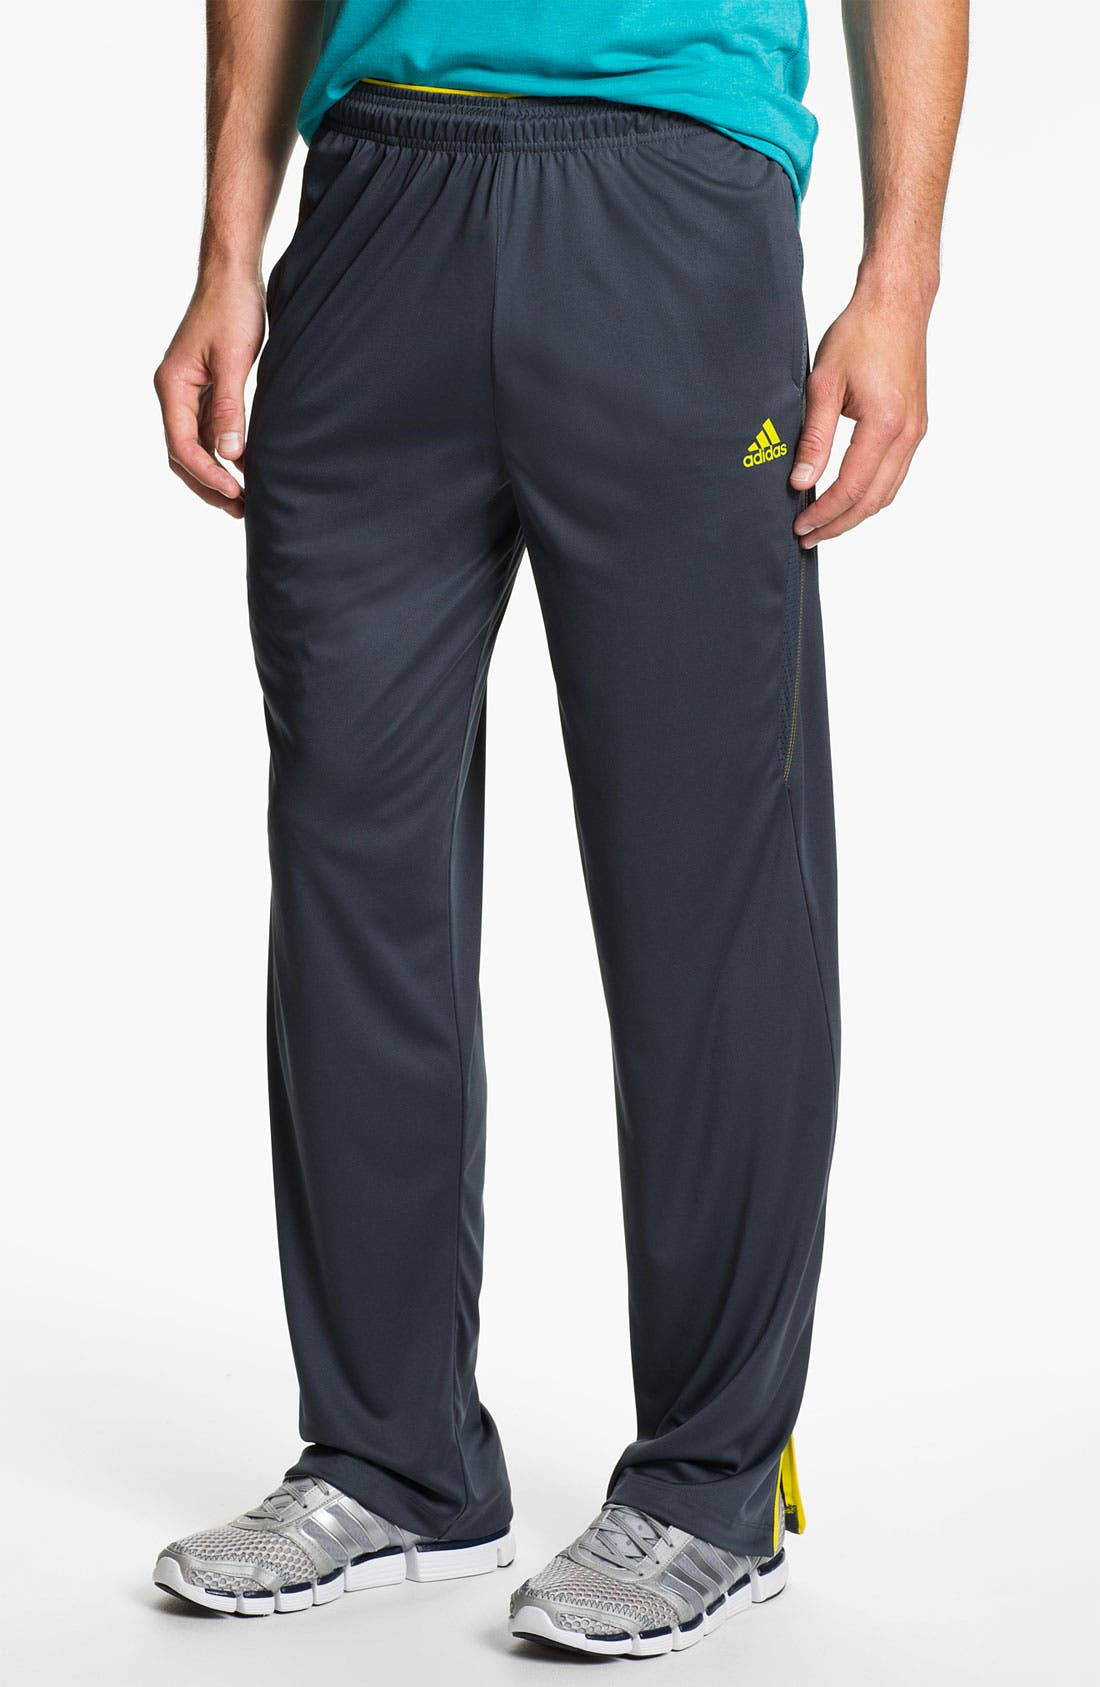 Alternate Image 1 Selected - adidas 'Climaspeed' Tapered Pants